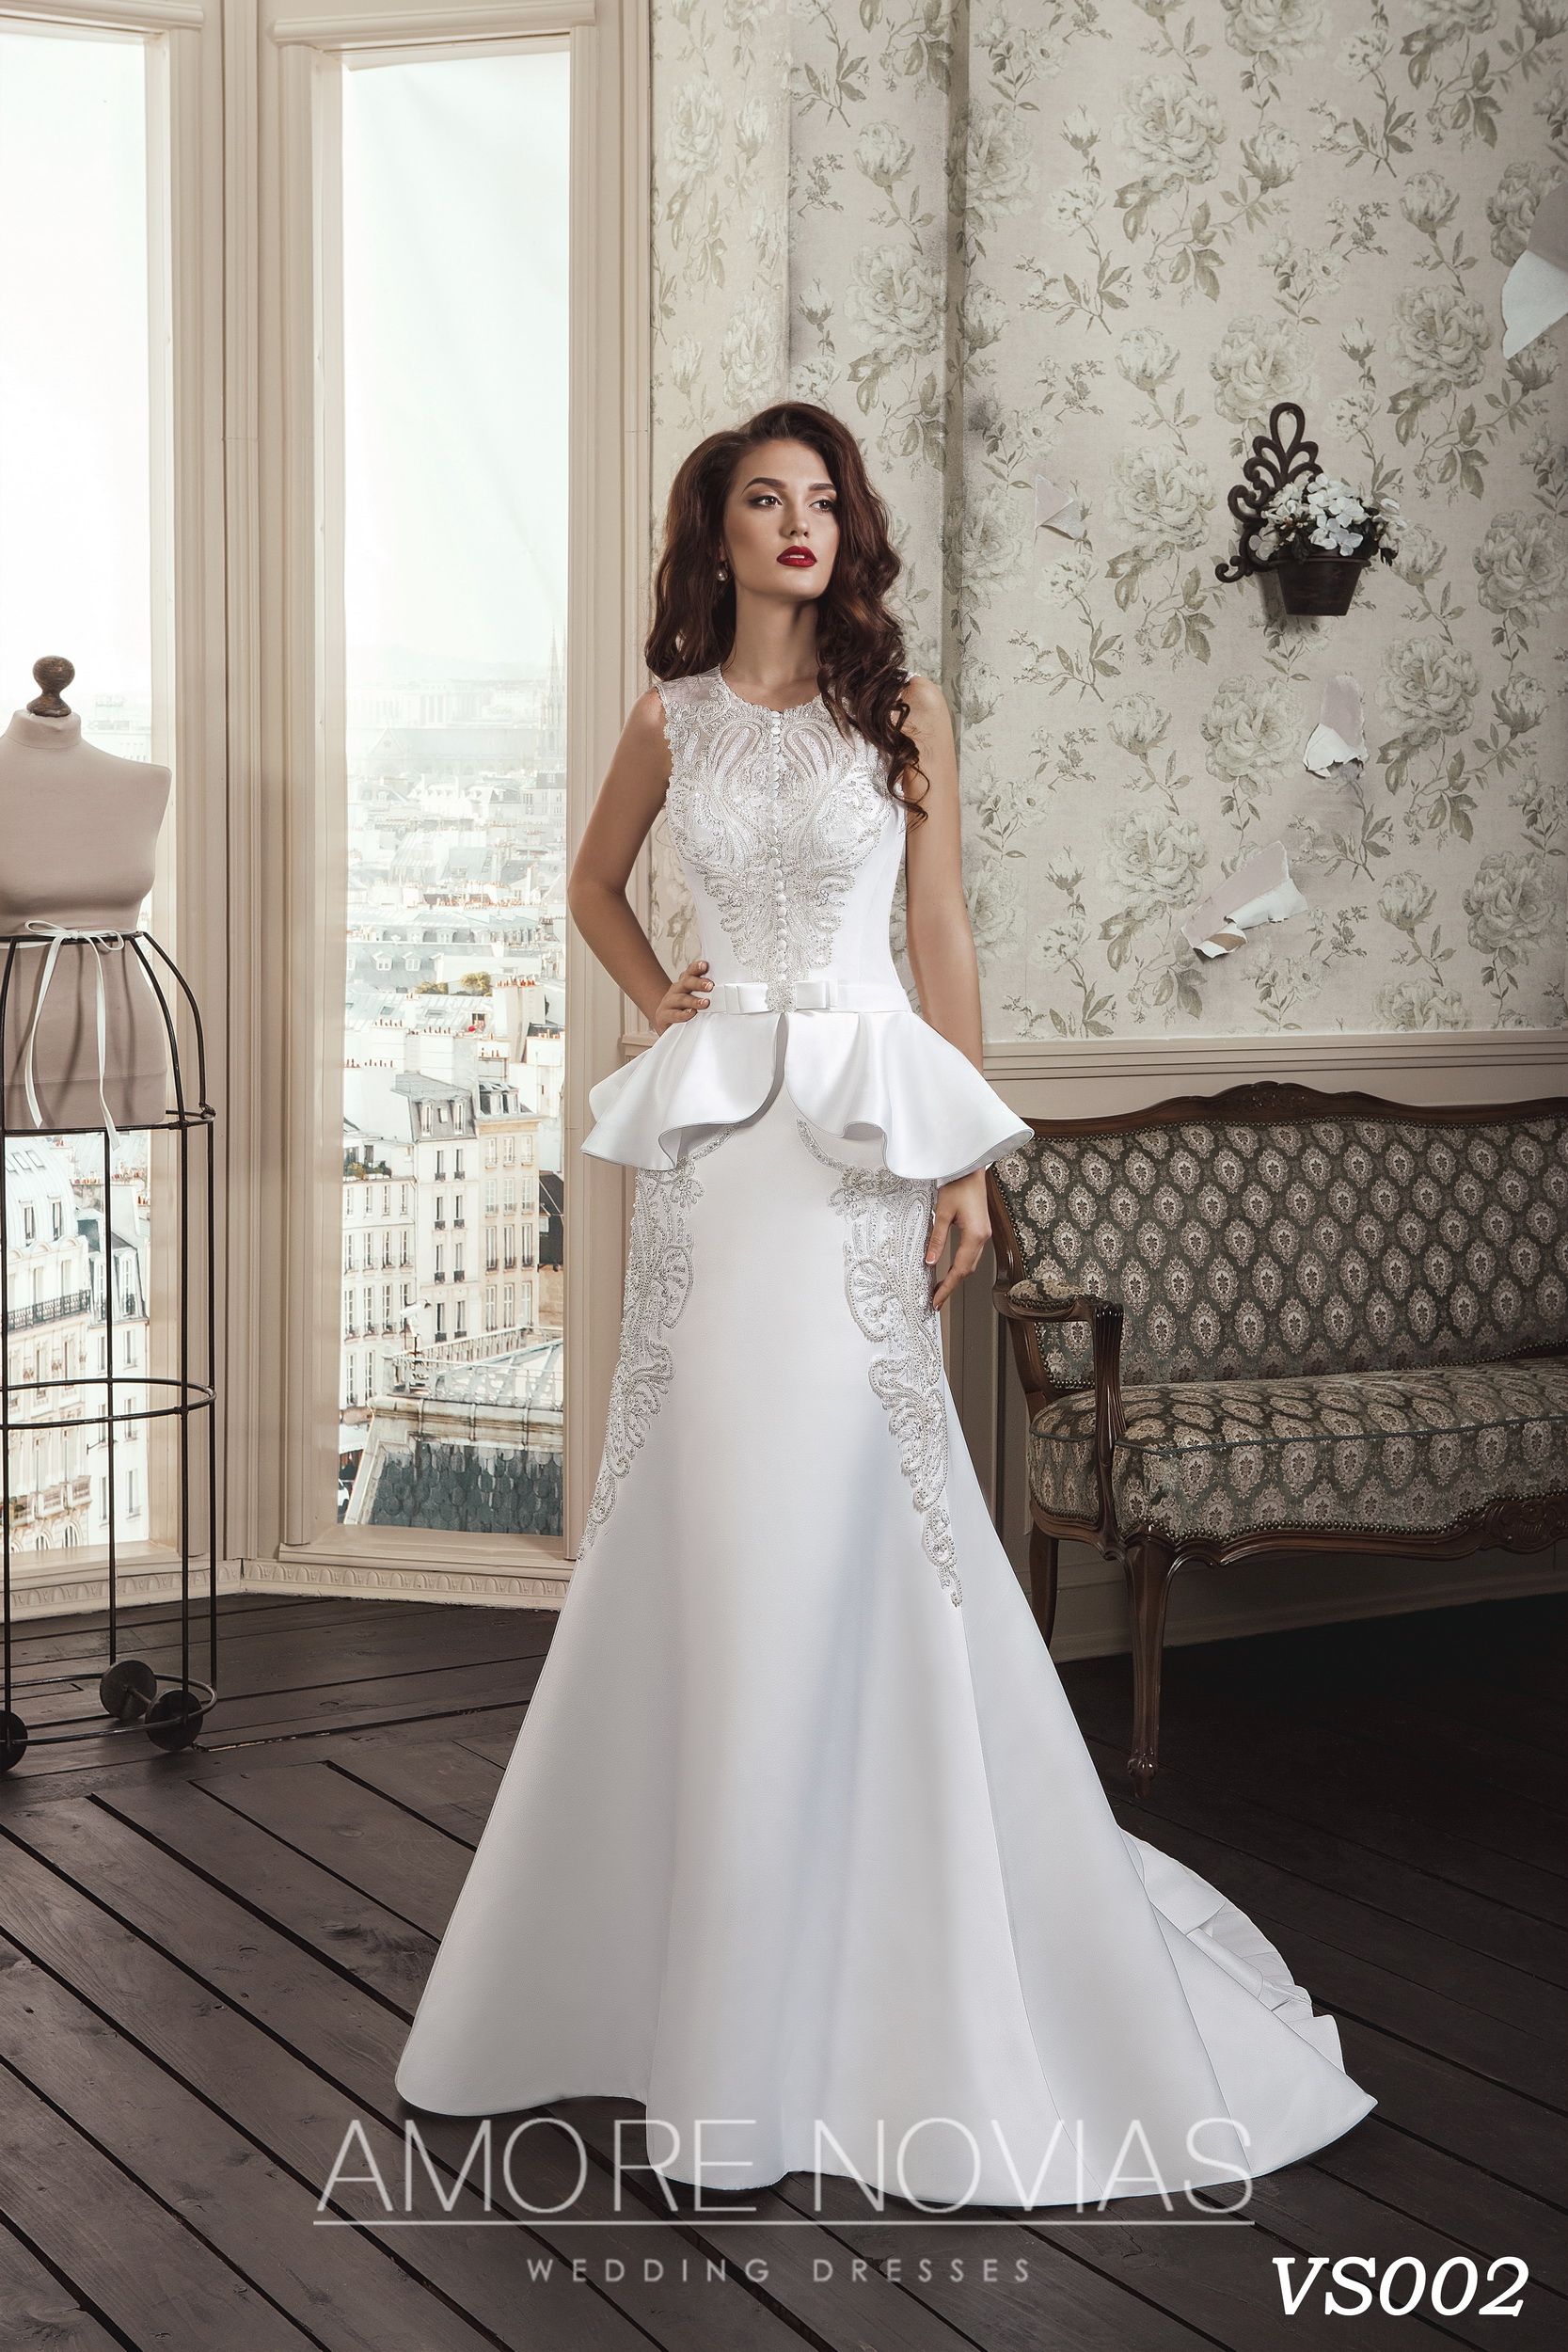 https://amore-novias.com/images/stories/virtuemart/product/vs002.jpg